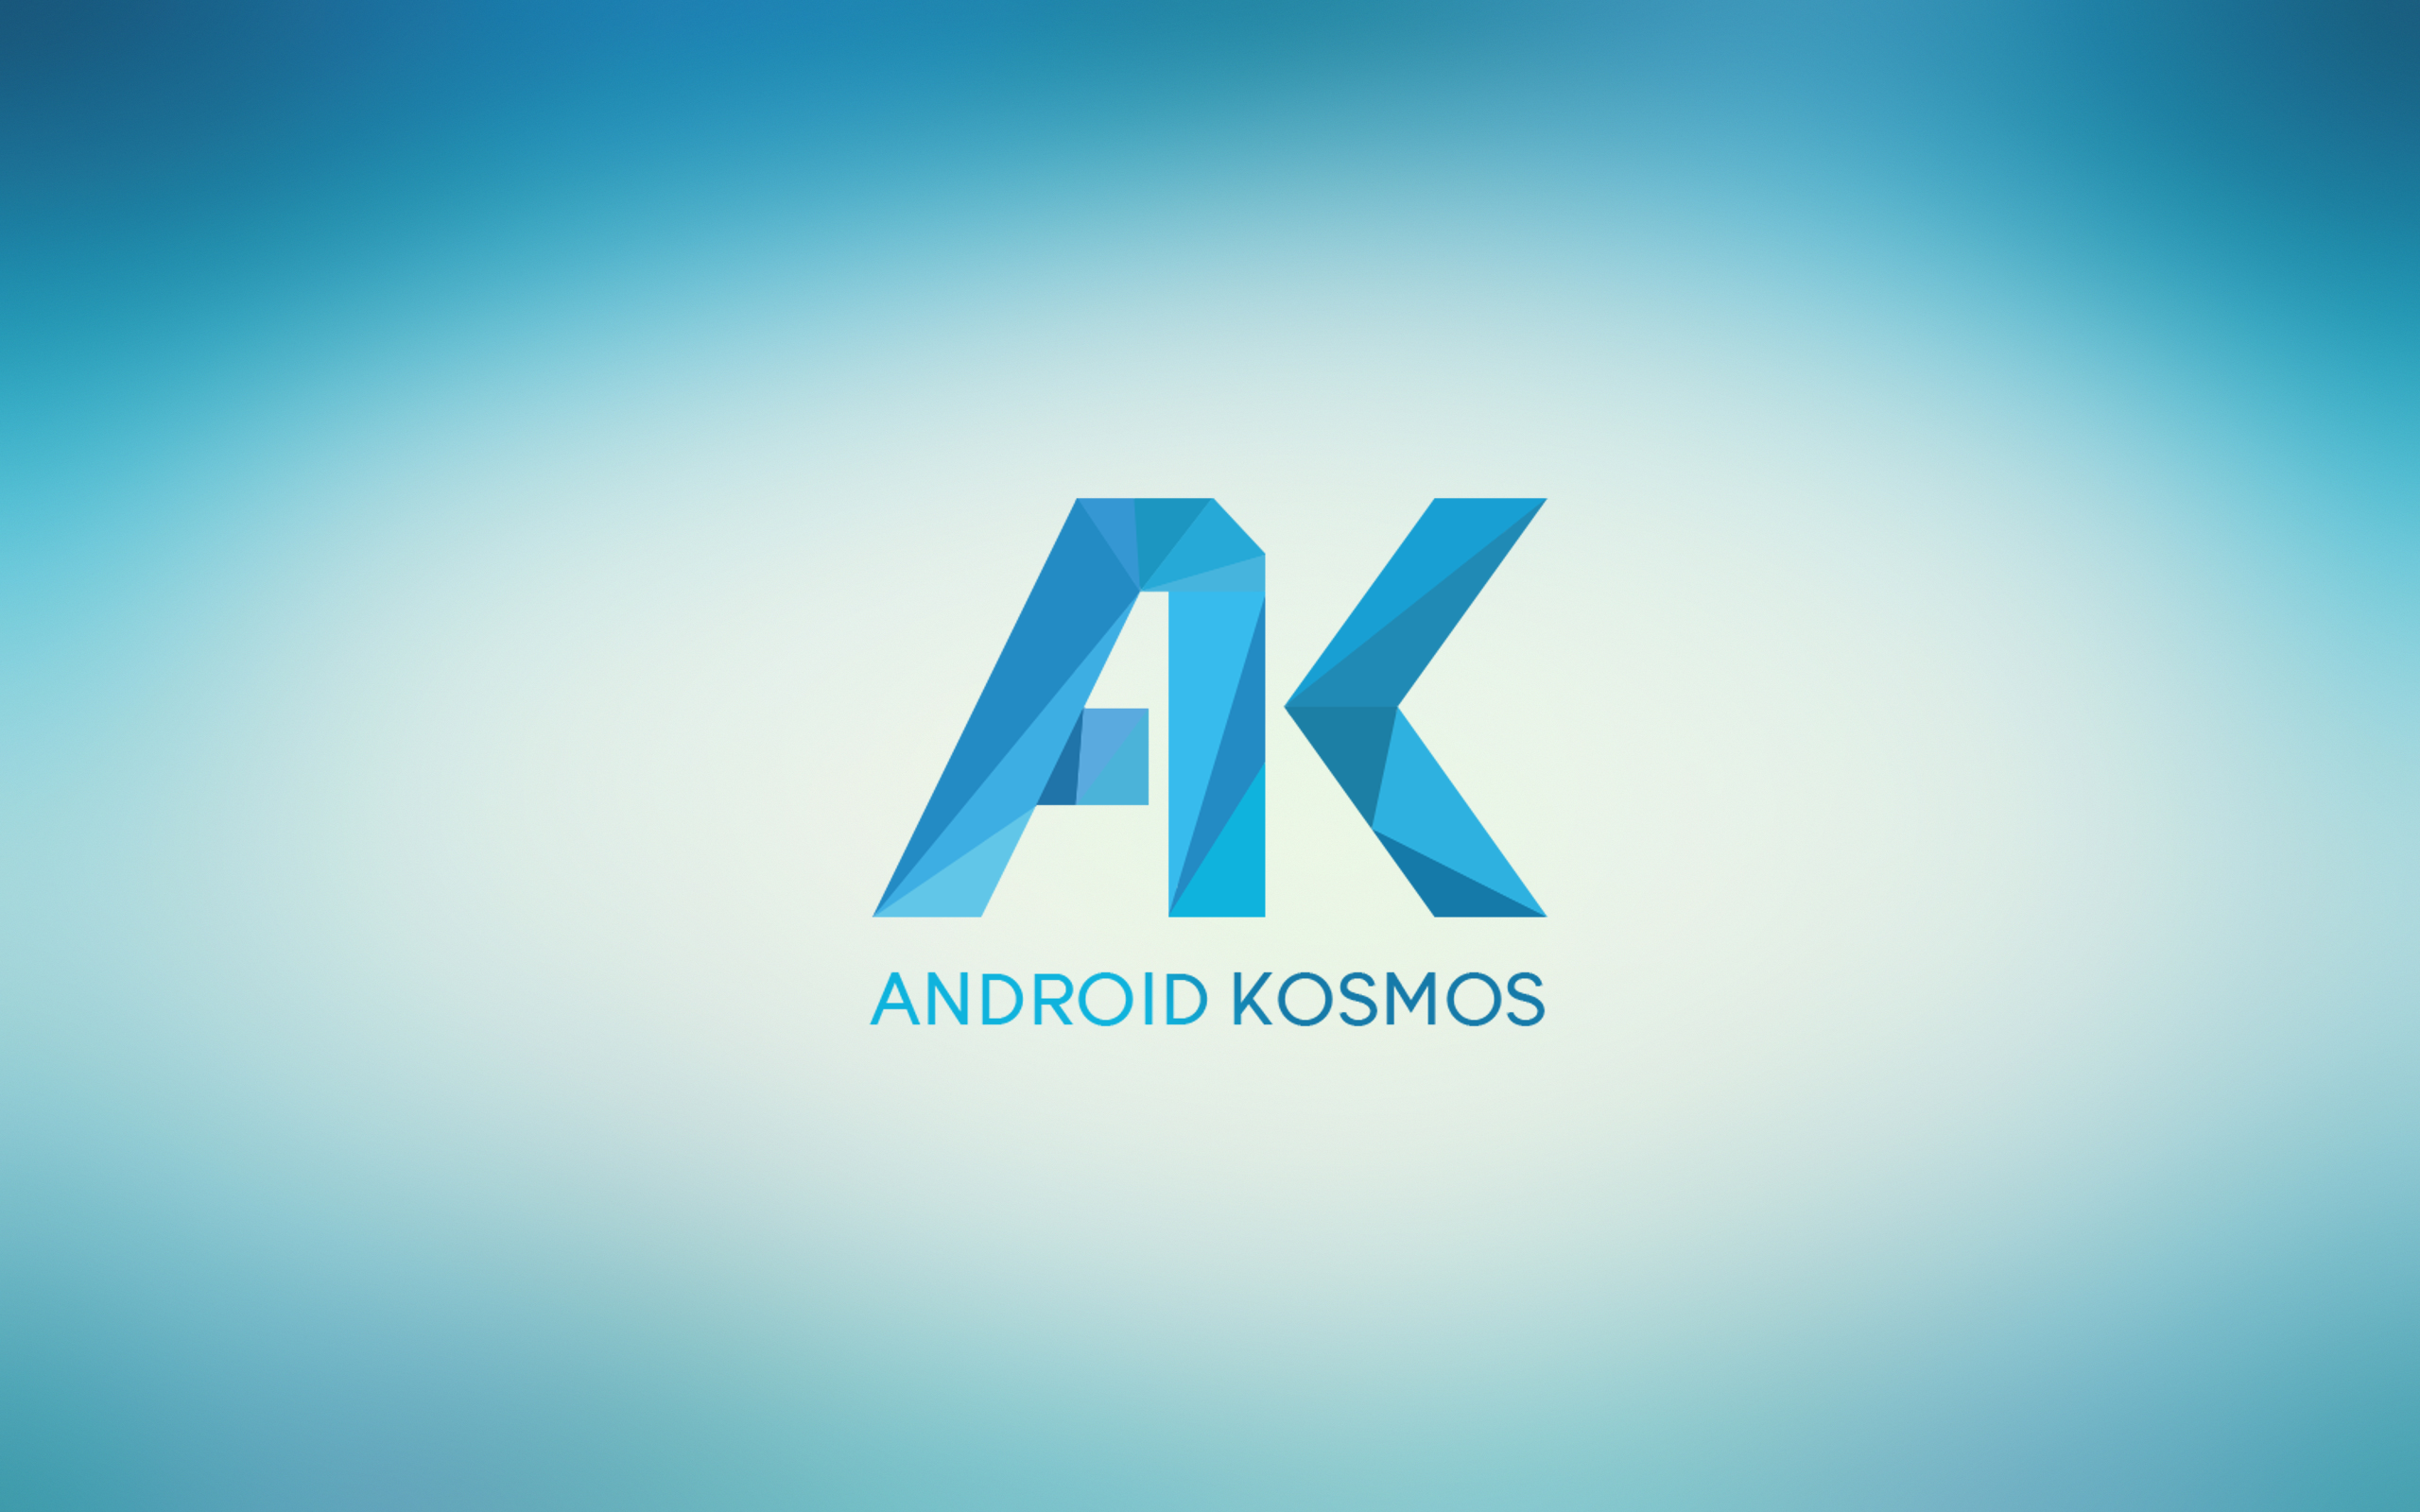 AndroidKosmos Wallpaper 2 2650x1600